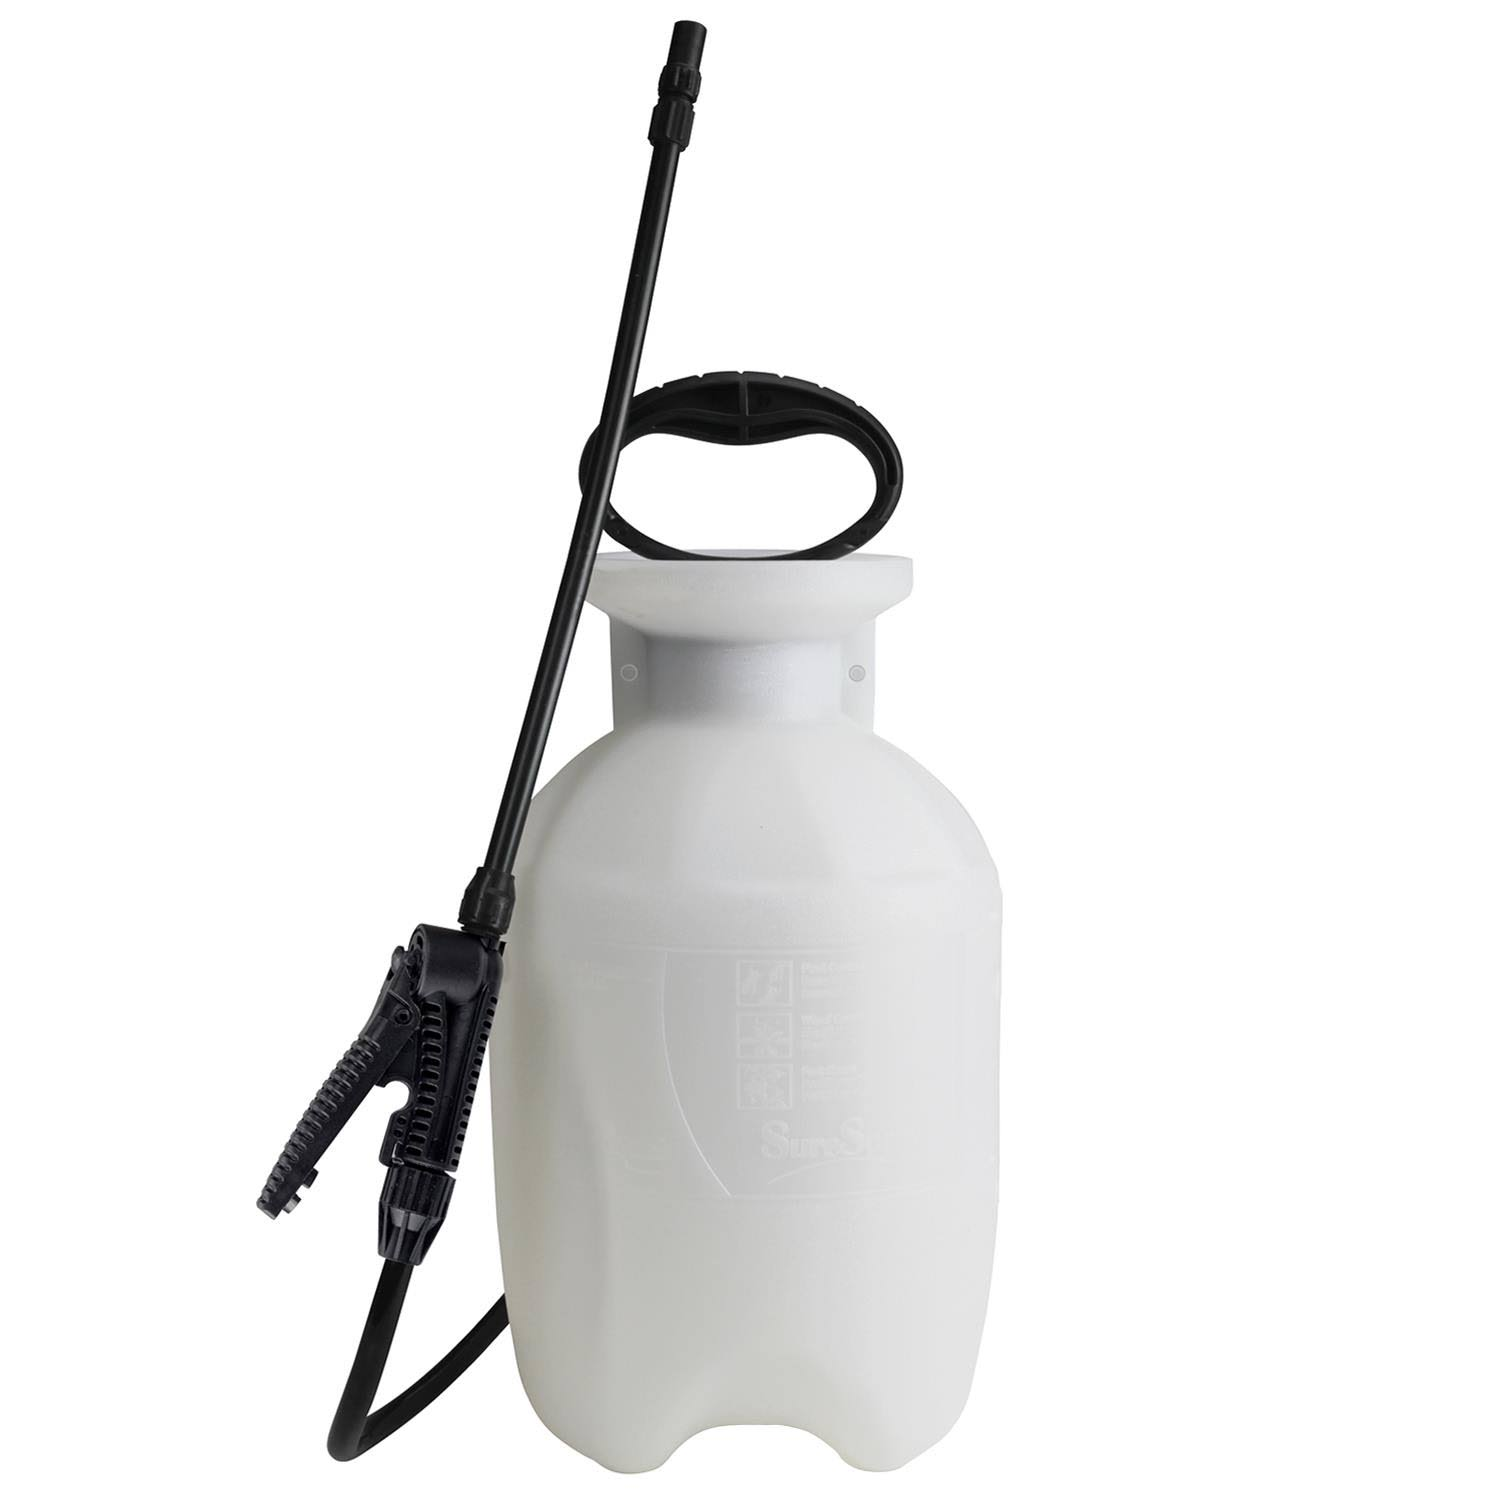 Chapin Lawn and Garden Sprayer - 1gal